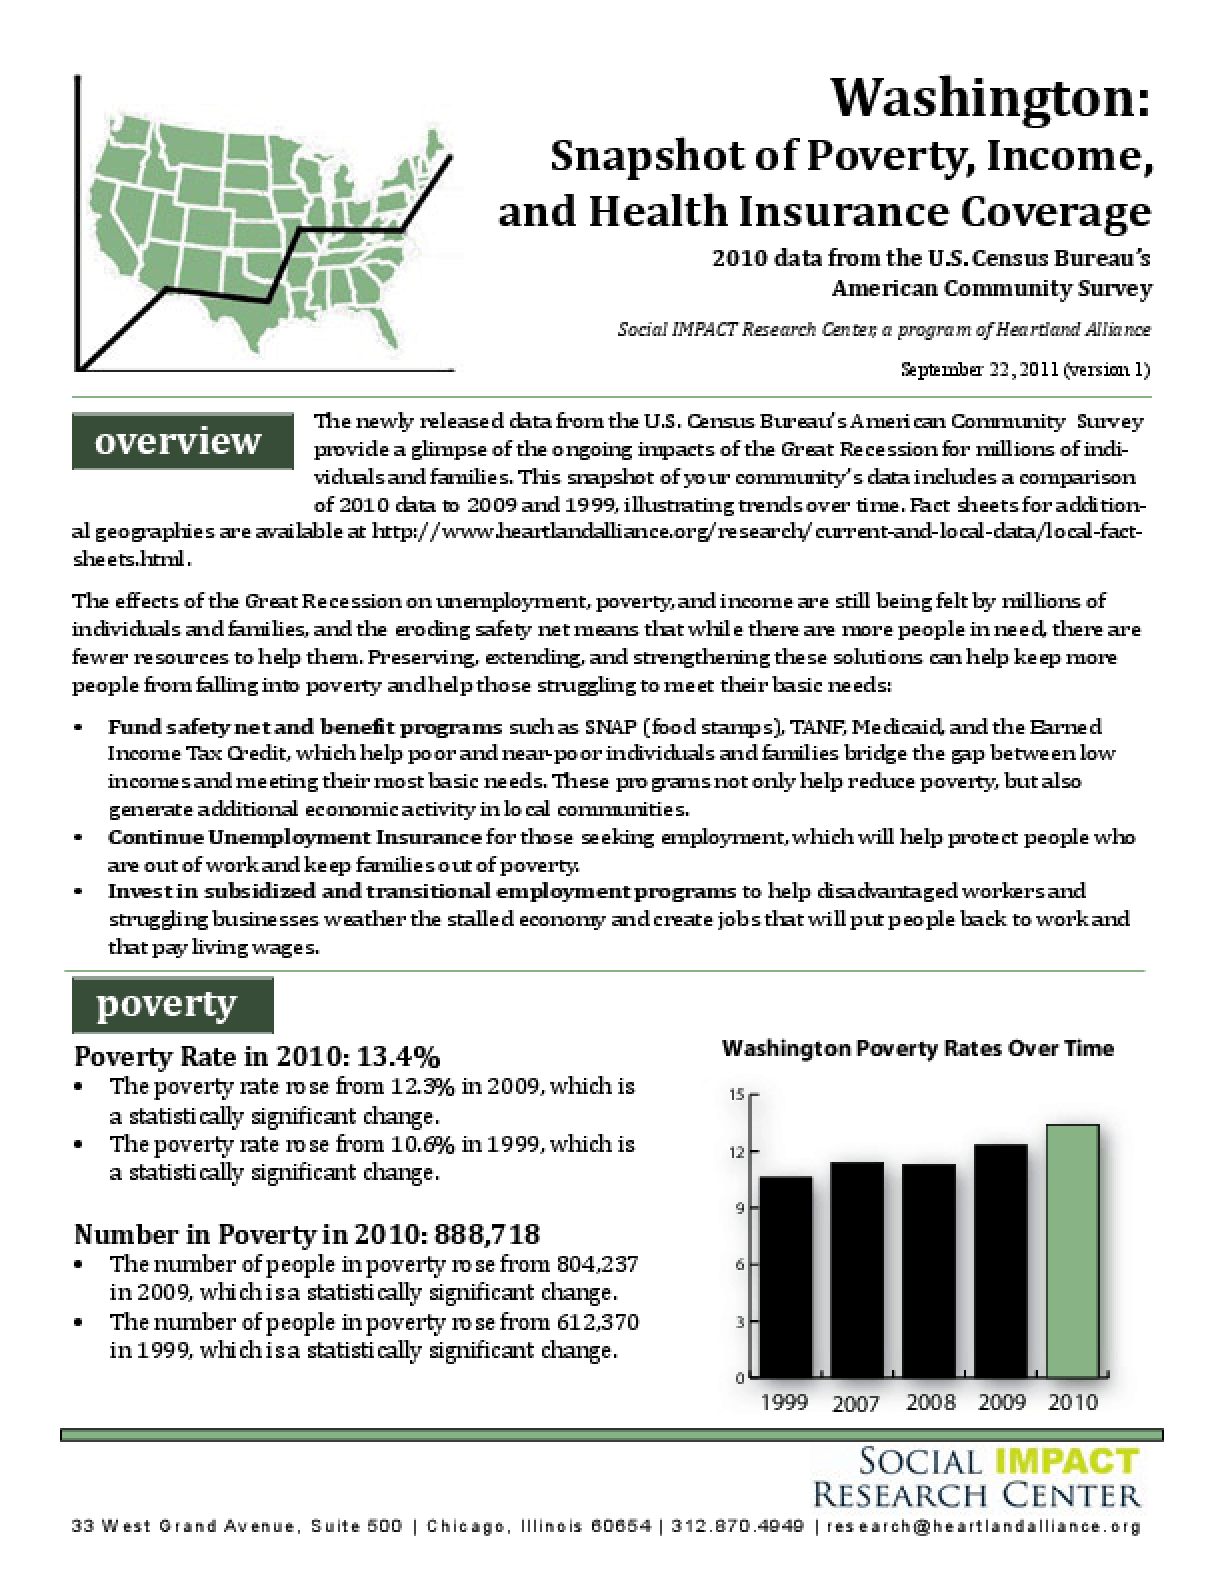 Washington: Snapshot of Poverty, Income, and Health Insurance Coverage